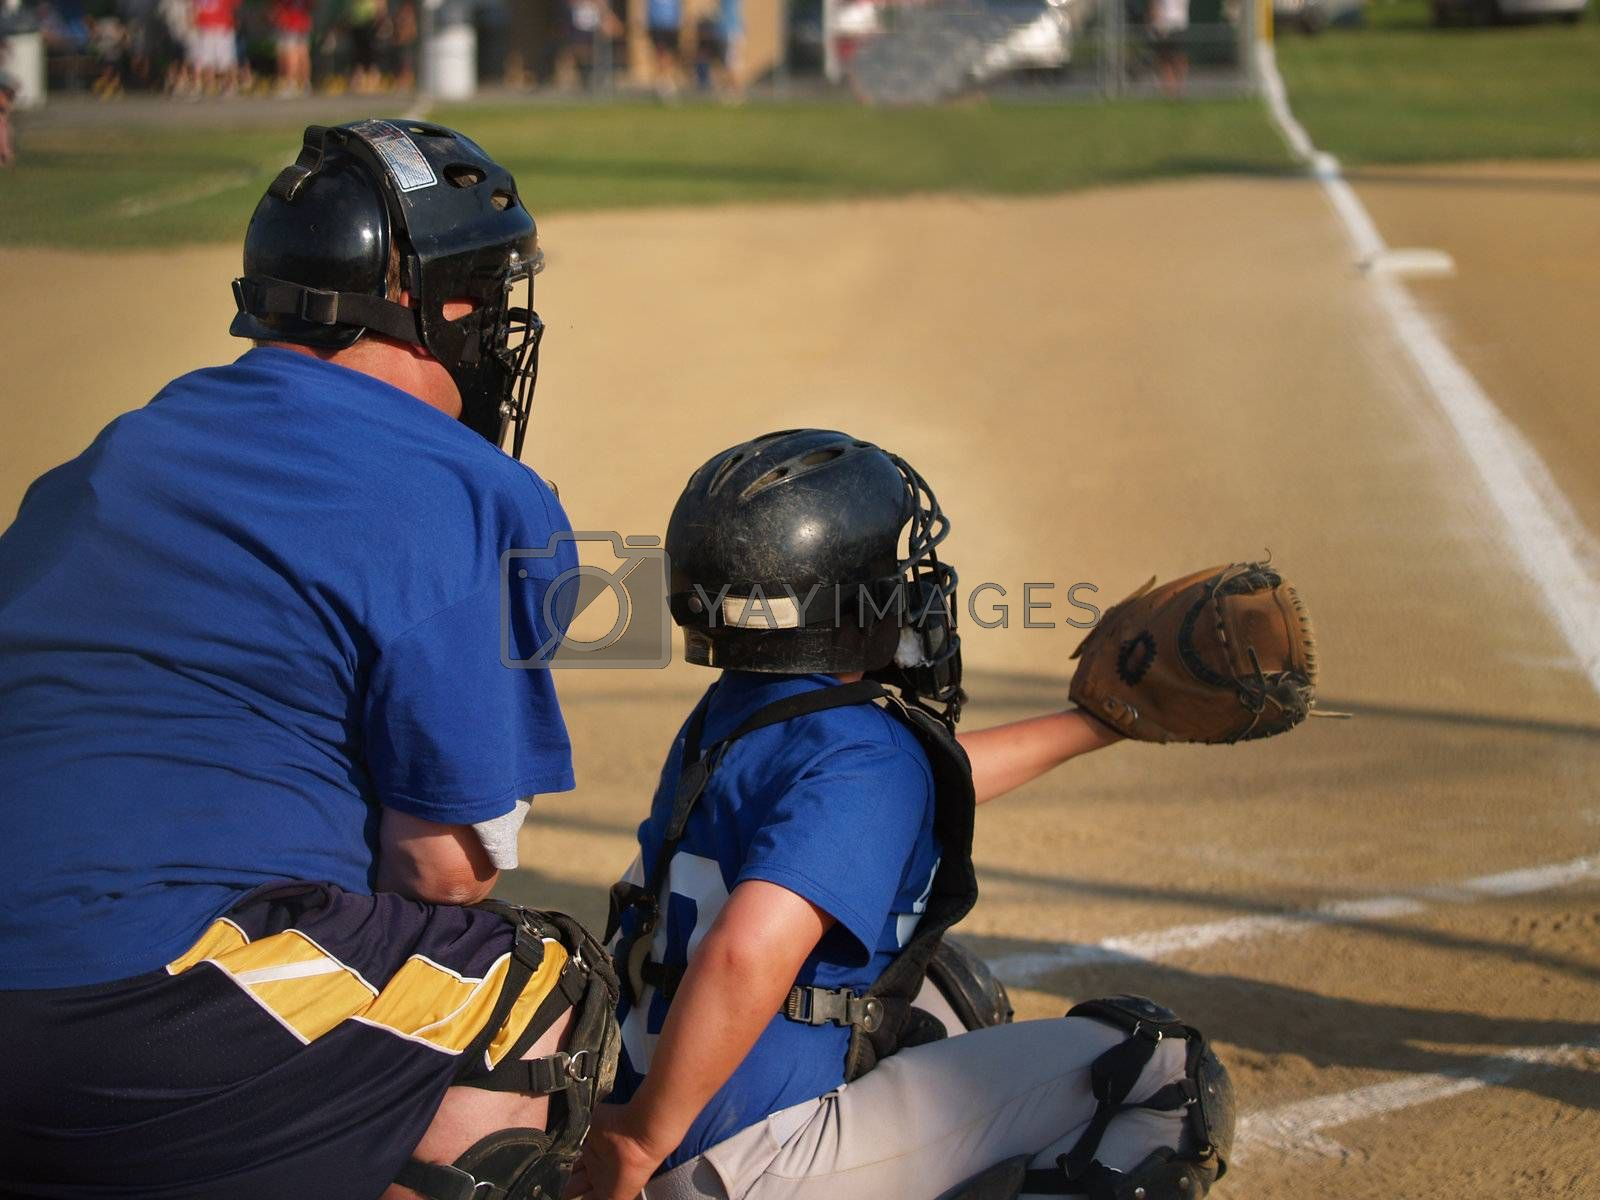 little league baseball catcher and umpire behind home plate